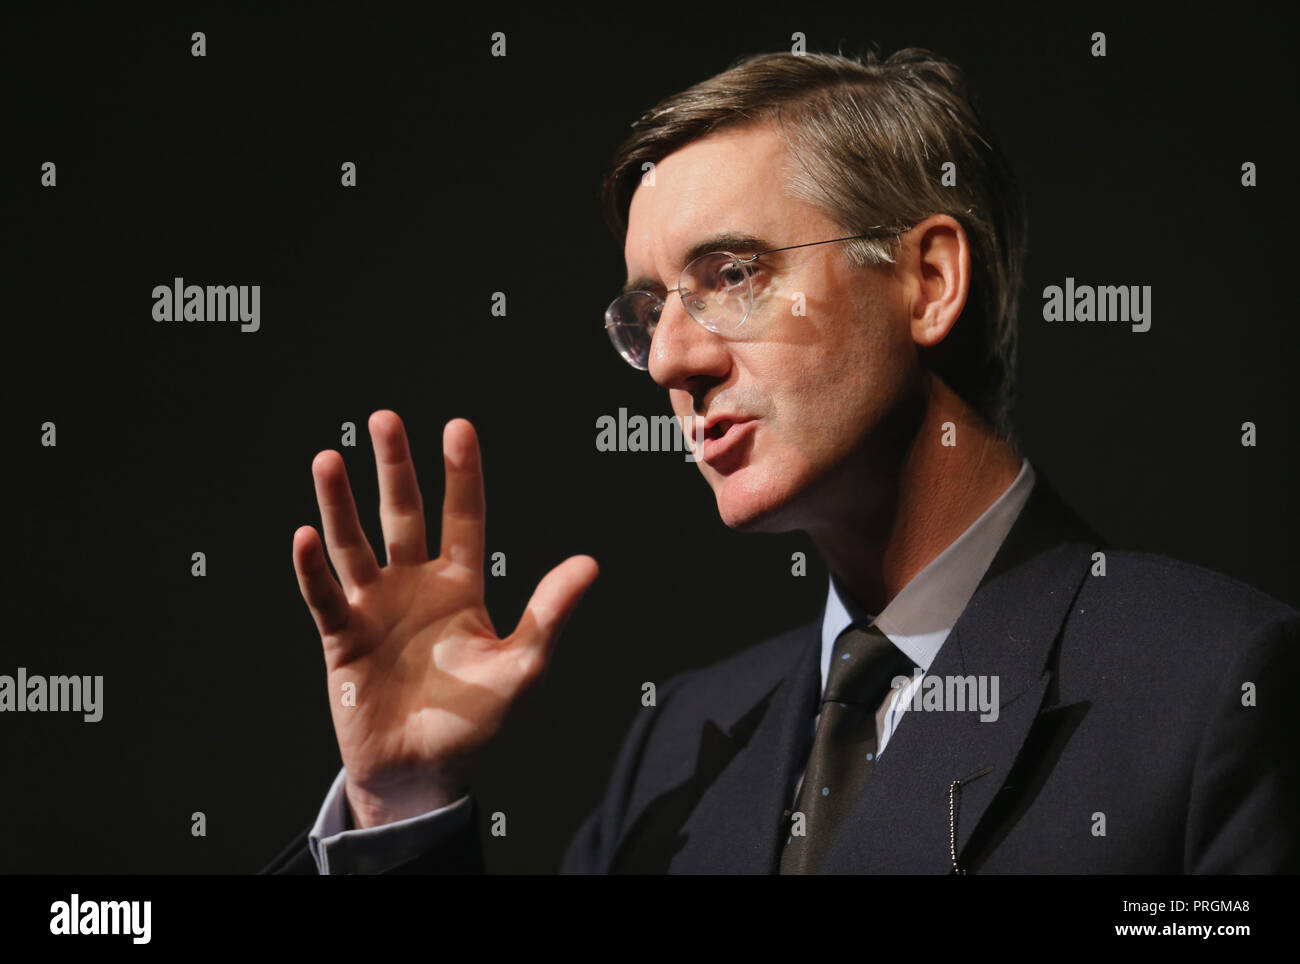 JACOB REES-MOGG MP, CONSERVATIVE MP 2018 - Stock Image